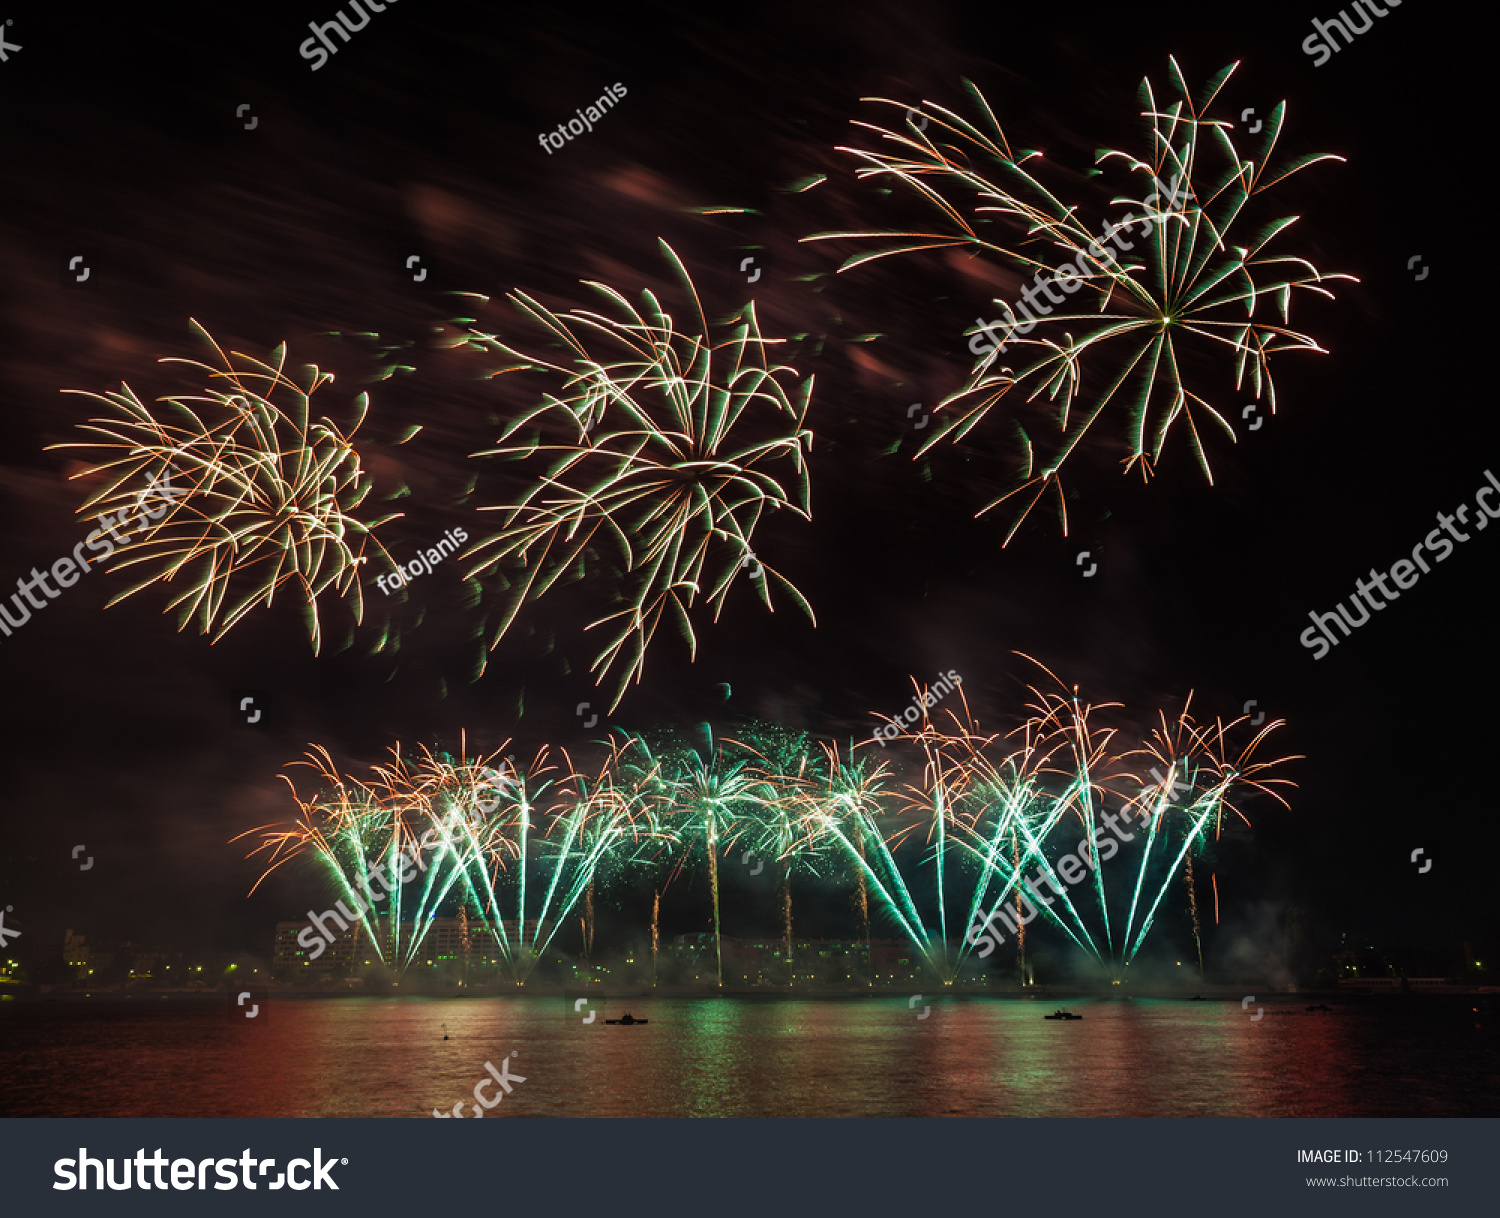 Wallpaper Salute Sky Holiday Colorful 3376x4220: Colorful Fireworks Night Rainbow Salute Different Stock